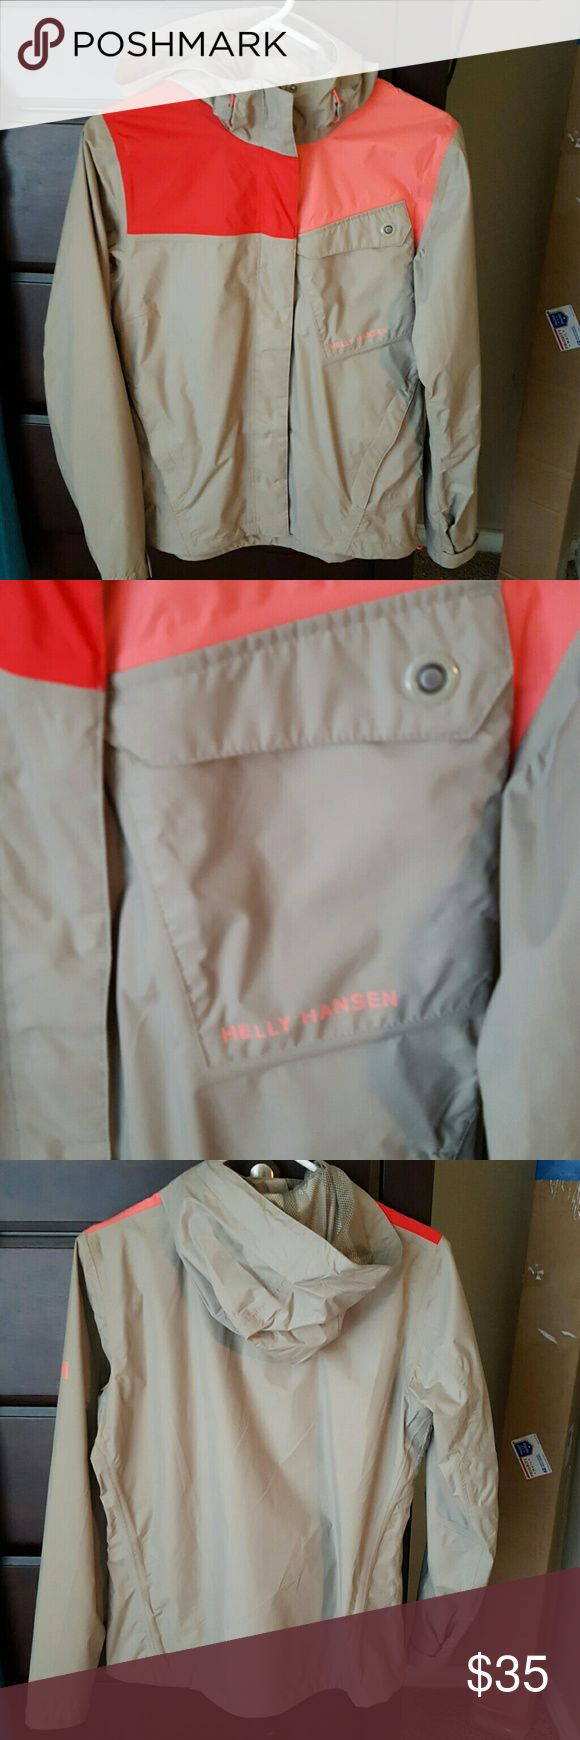 Helly Hansen rain jacket Size small. Great condition. Helly Hansen Jackets & Coats